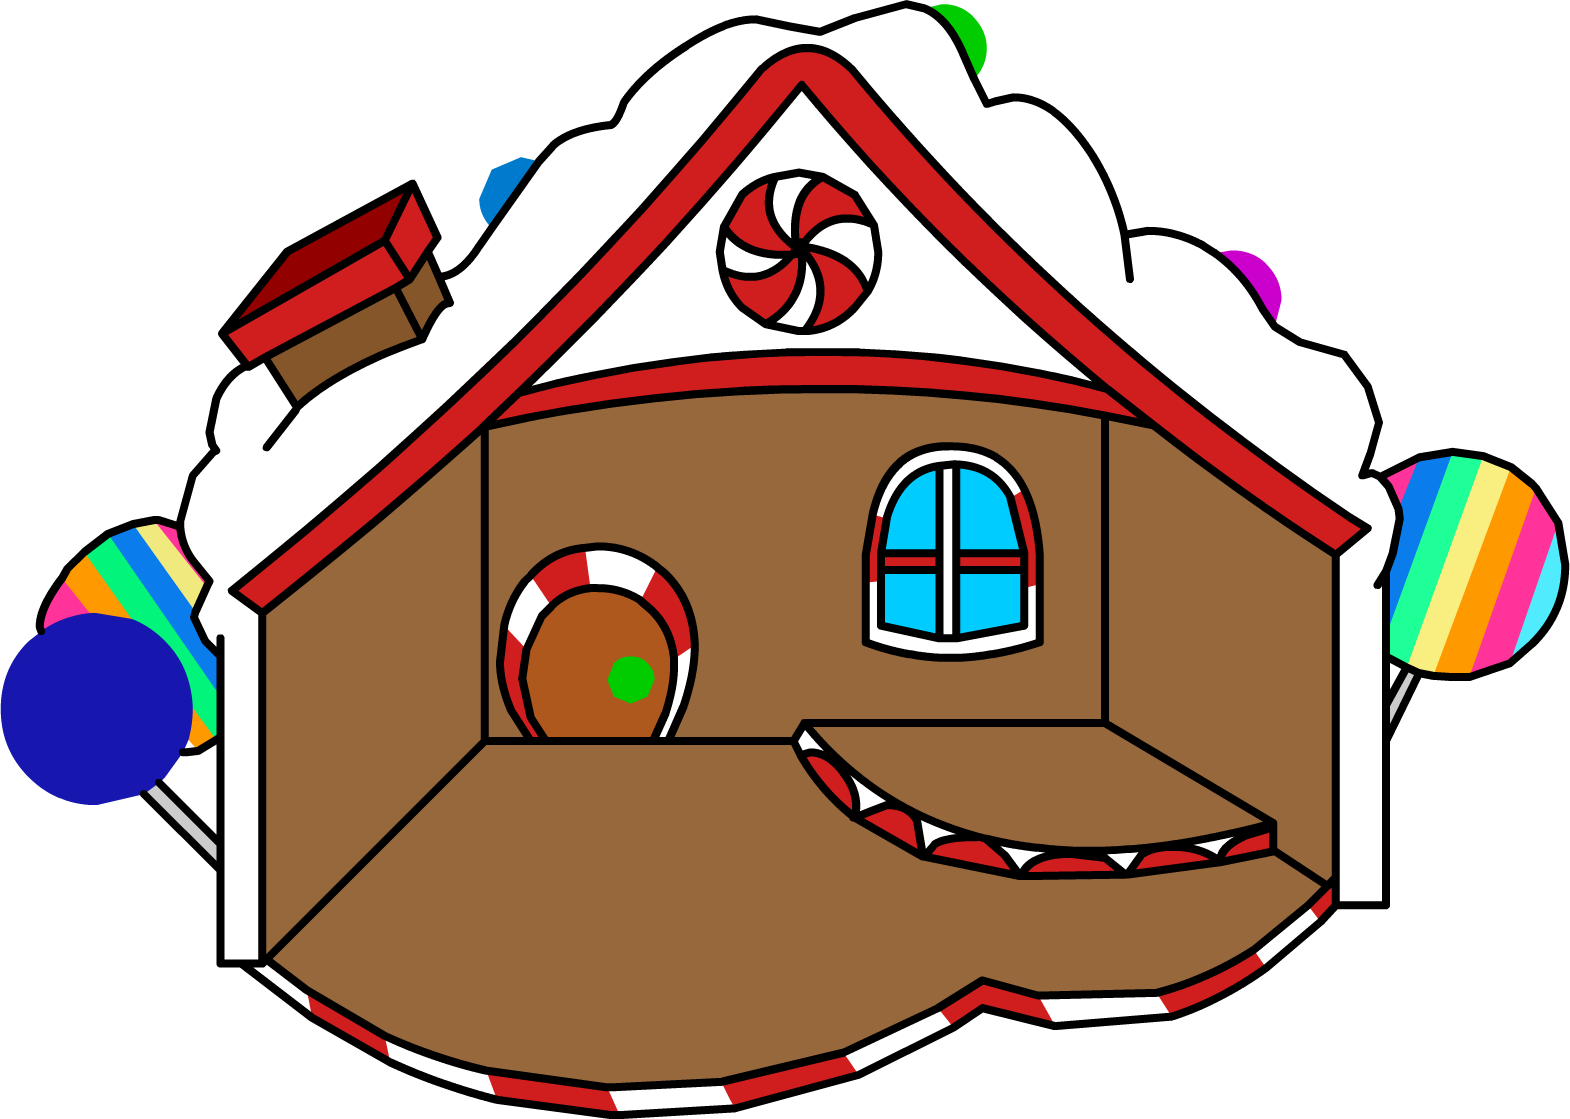 Gingerbread clipart treat. House club penguin wiki